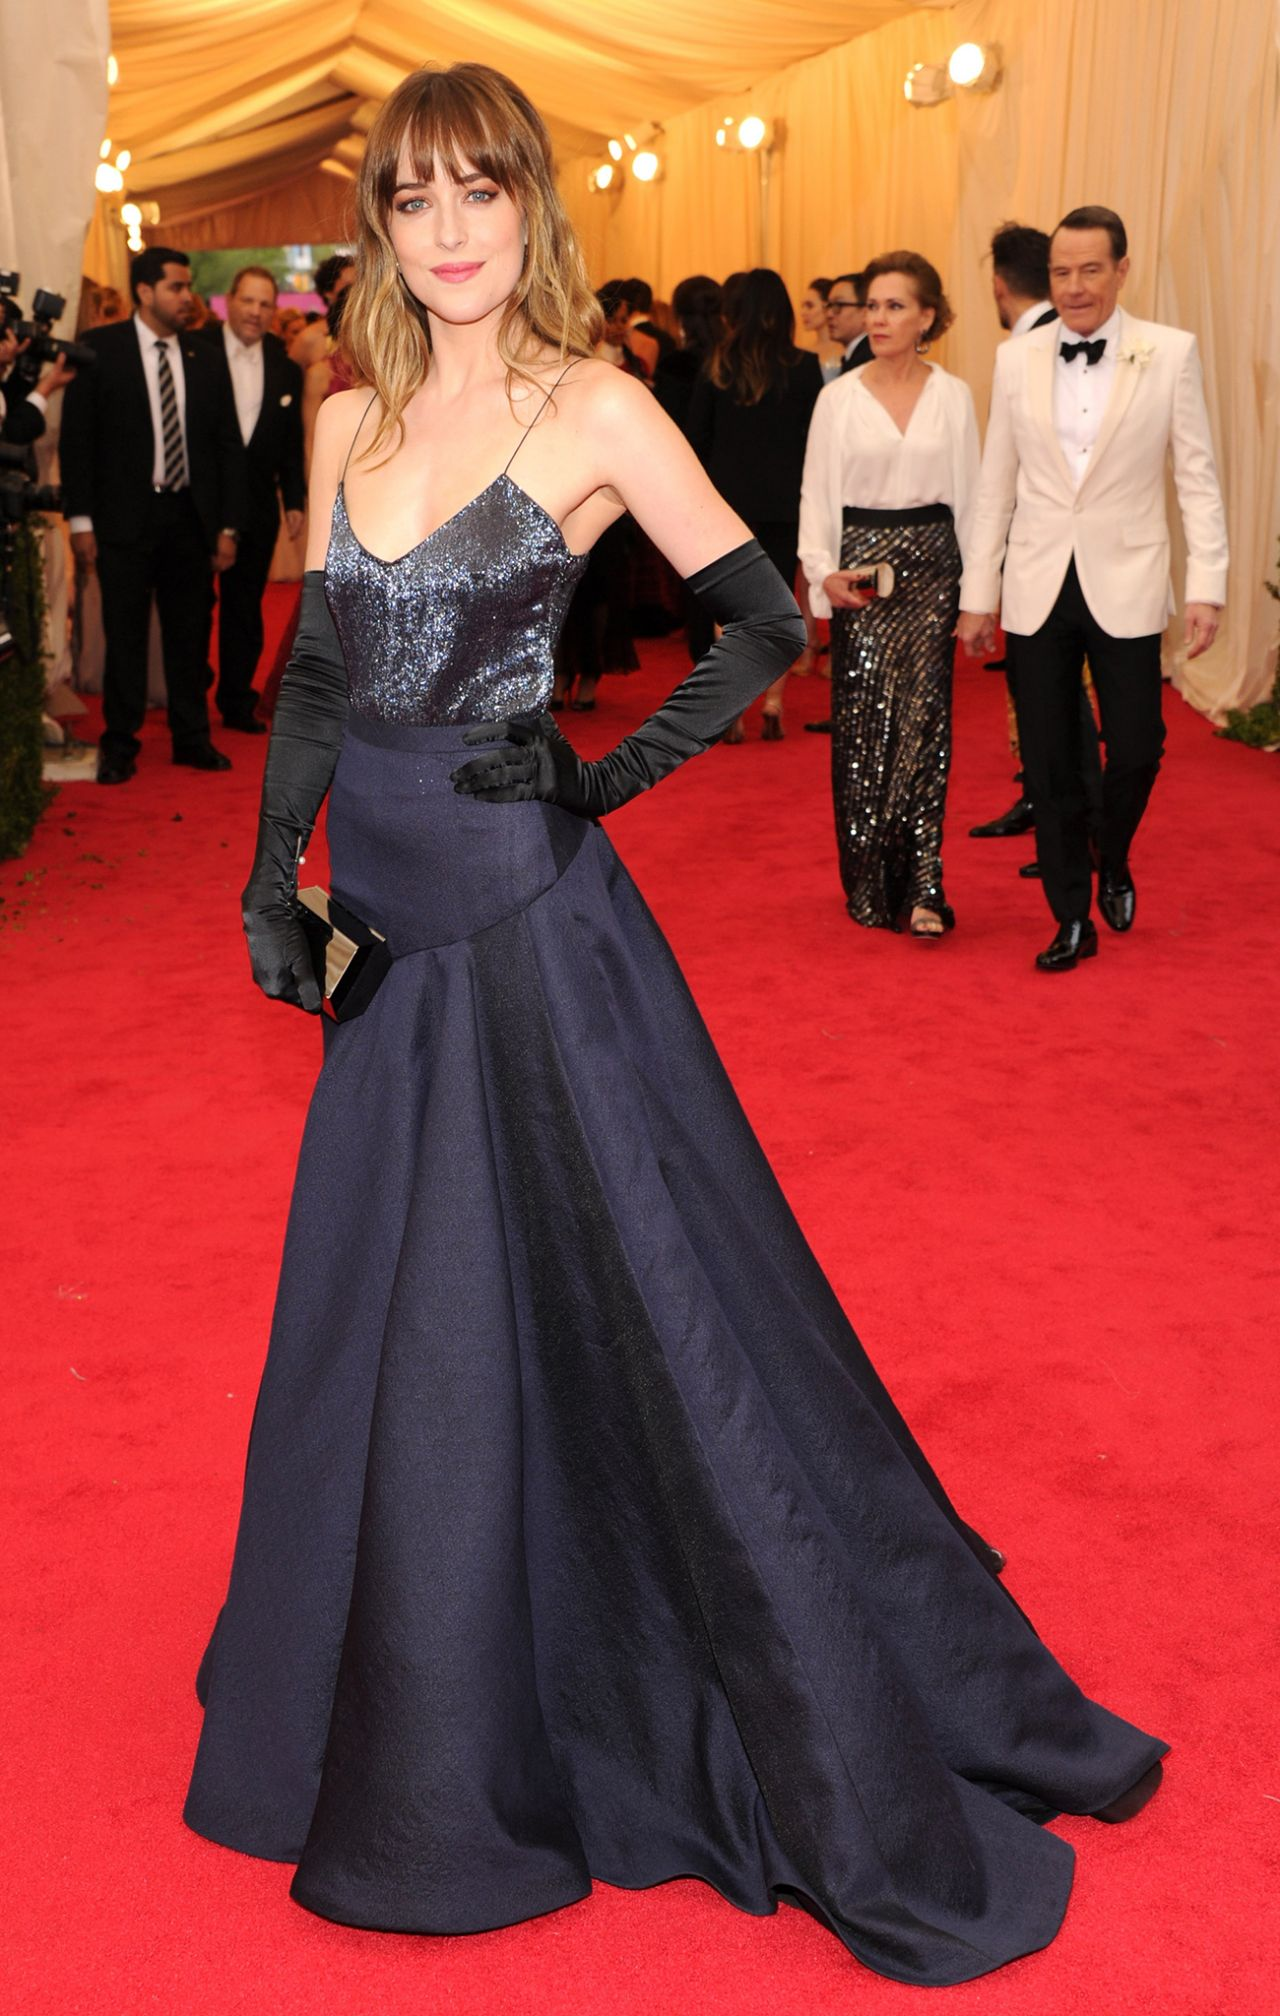 Dakota Johnson Wearing Jason Wu – 2014 Met Costume Institute Gala